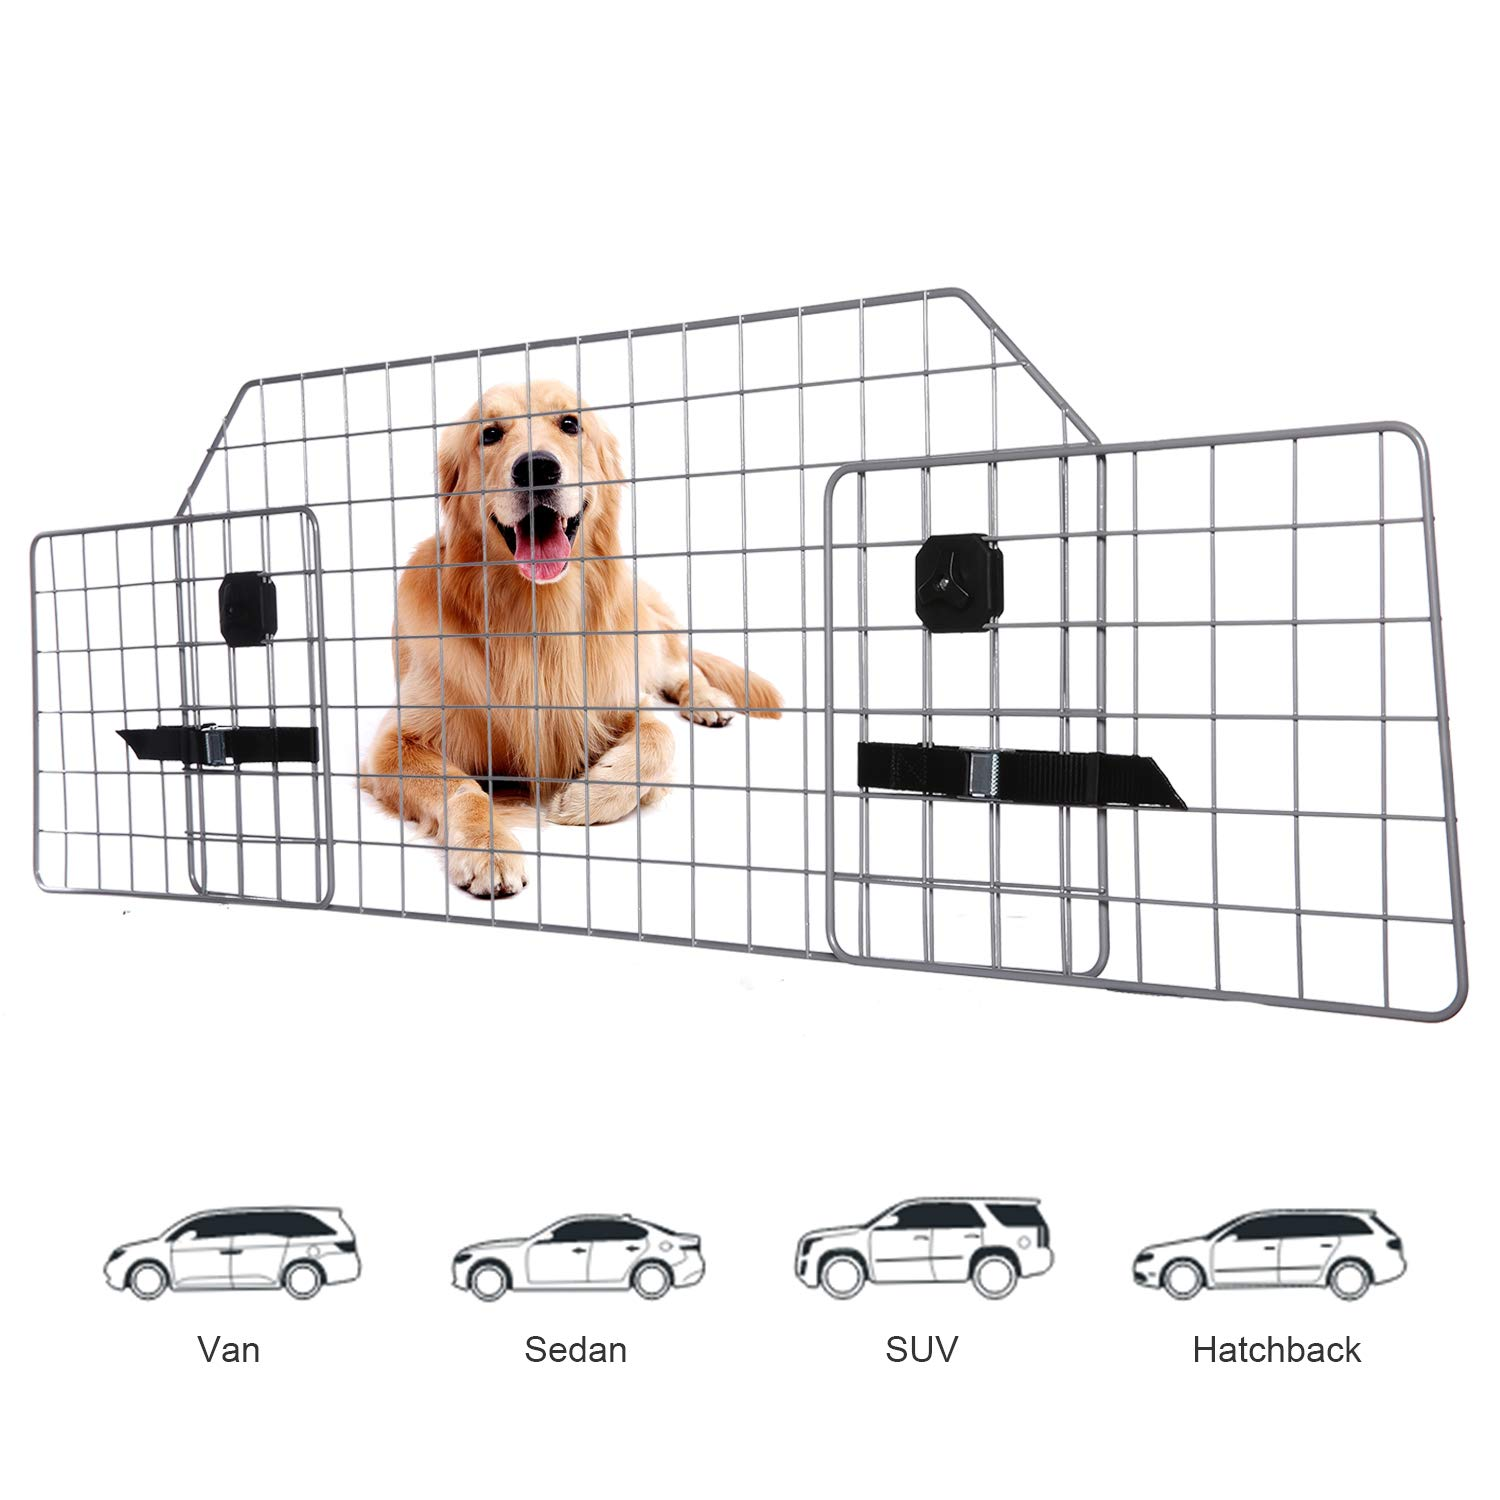 Adakiit Dog Barrier for SUV Car & Vehicles, Adjustable Pet Barrier Car Gate Universal Fit Wire Mesh Dog Car Guard - Car Divider for Dogs Pets SUVs with Upgraded Design by Adakiit